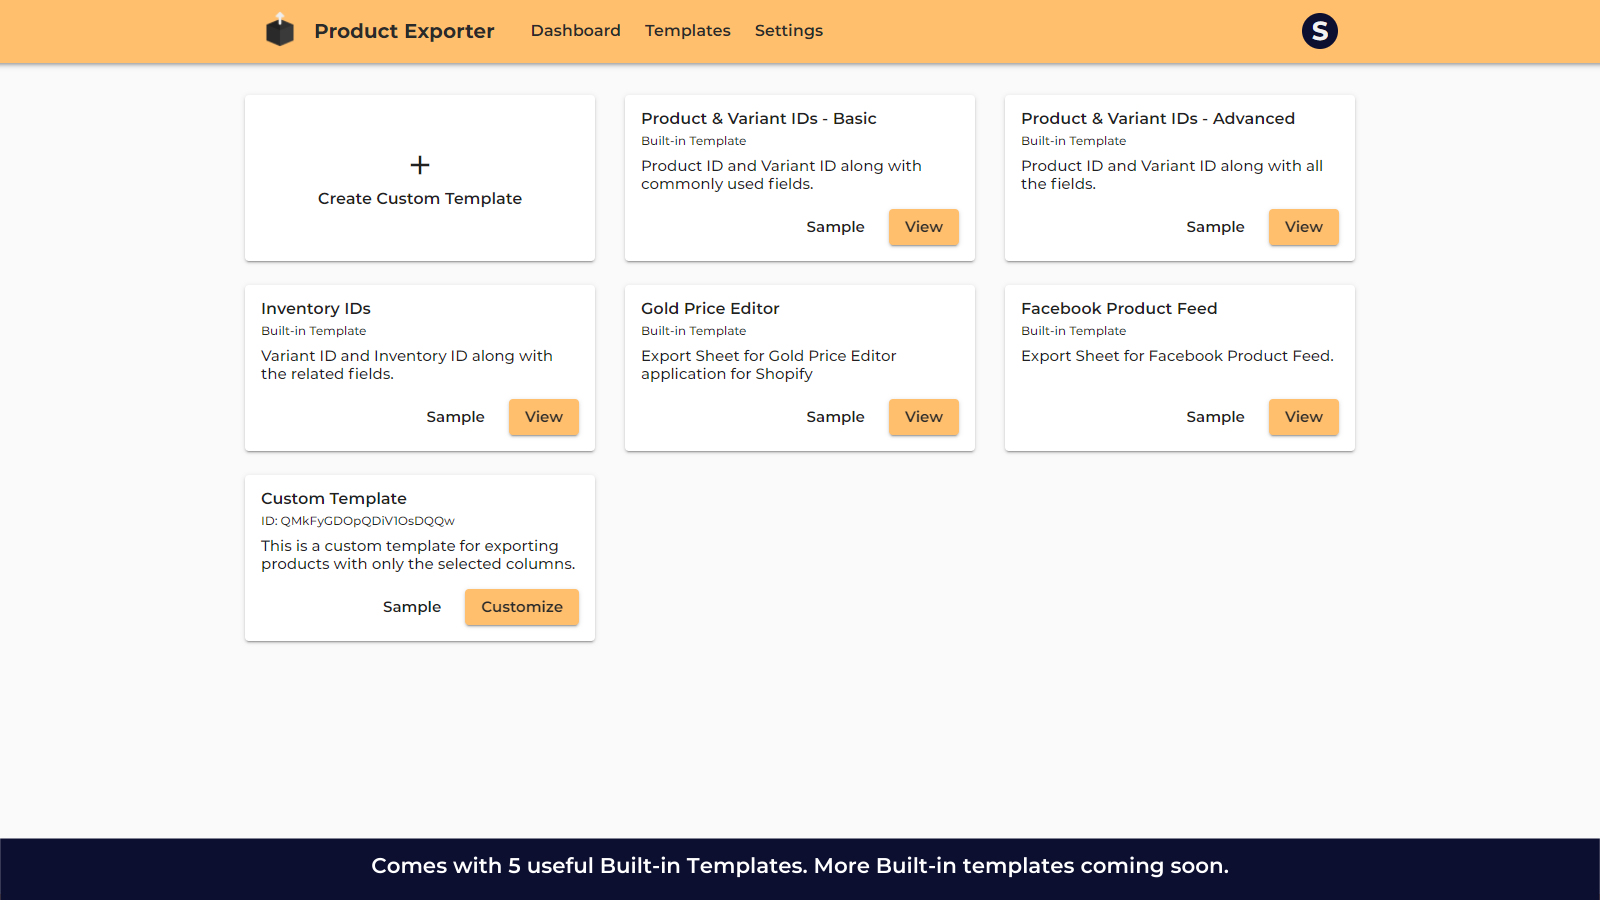 Built-in Templates for Exporting Products.